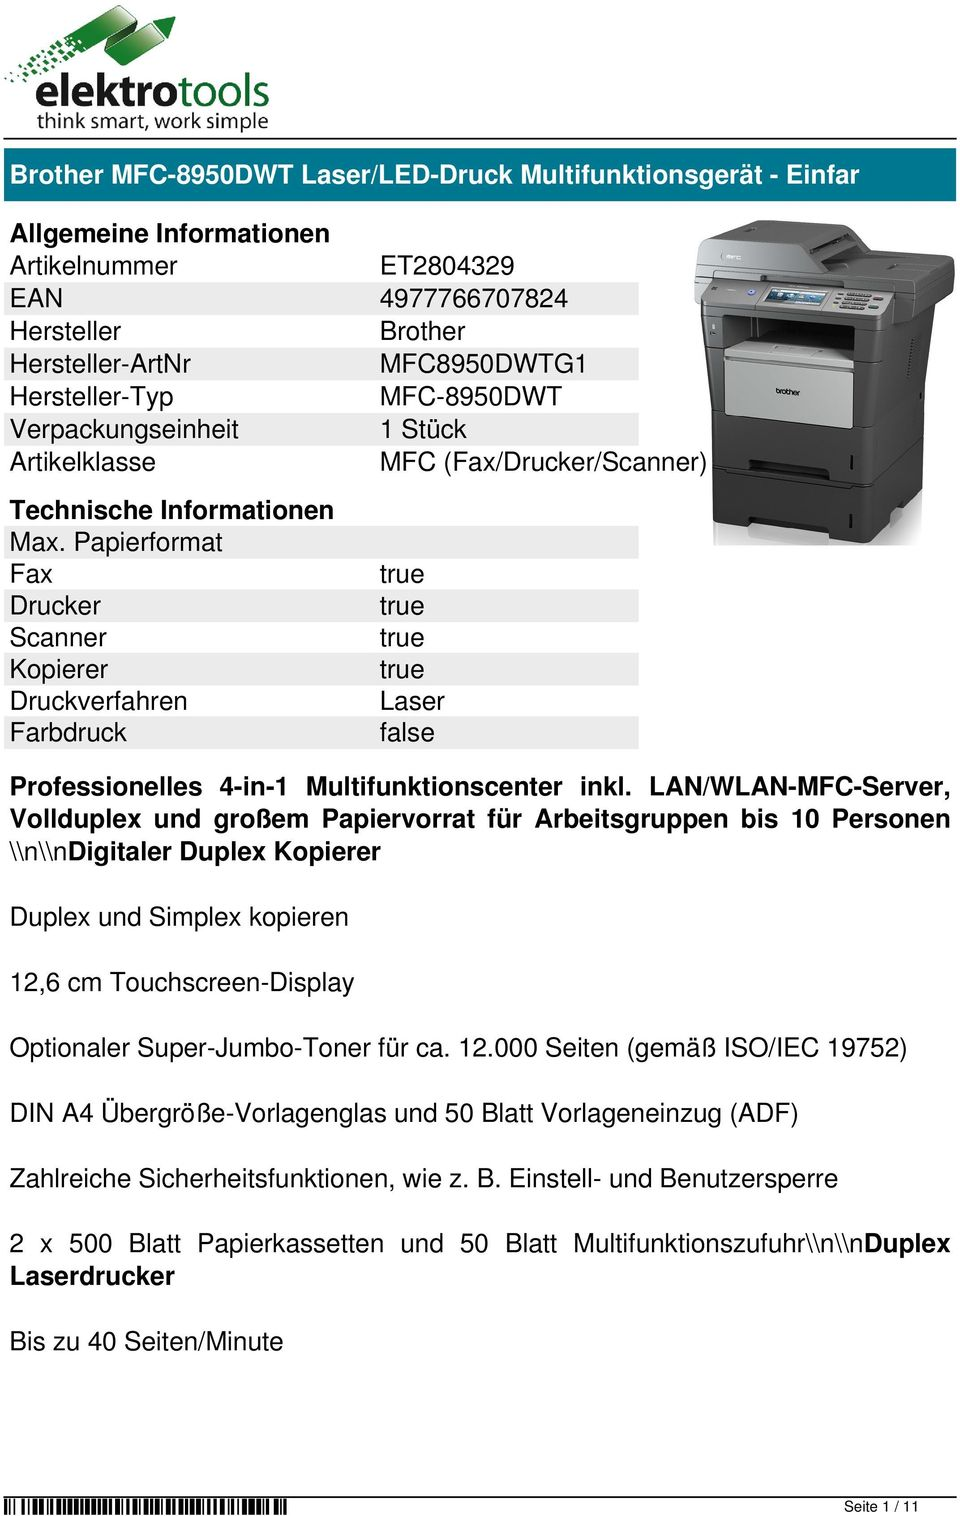 Papierformat Fax Drucker Scanner Kopierer Druckverfahren Farbdruck true true true true Laser false Professionelles 4-in-1 Multifunktionscenter inkl.